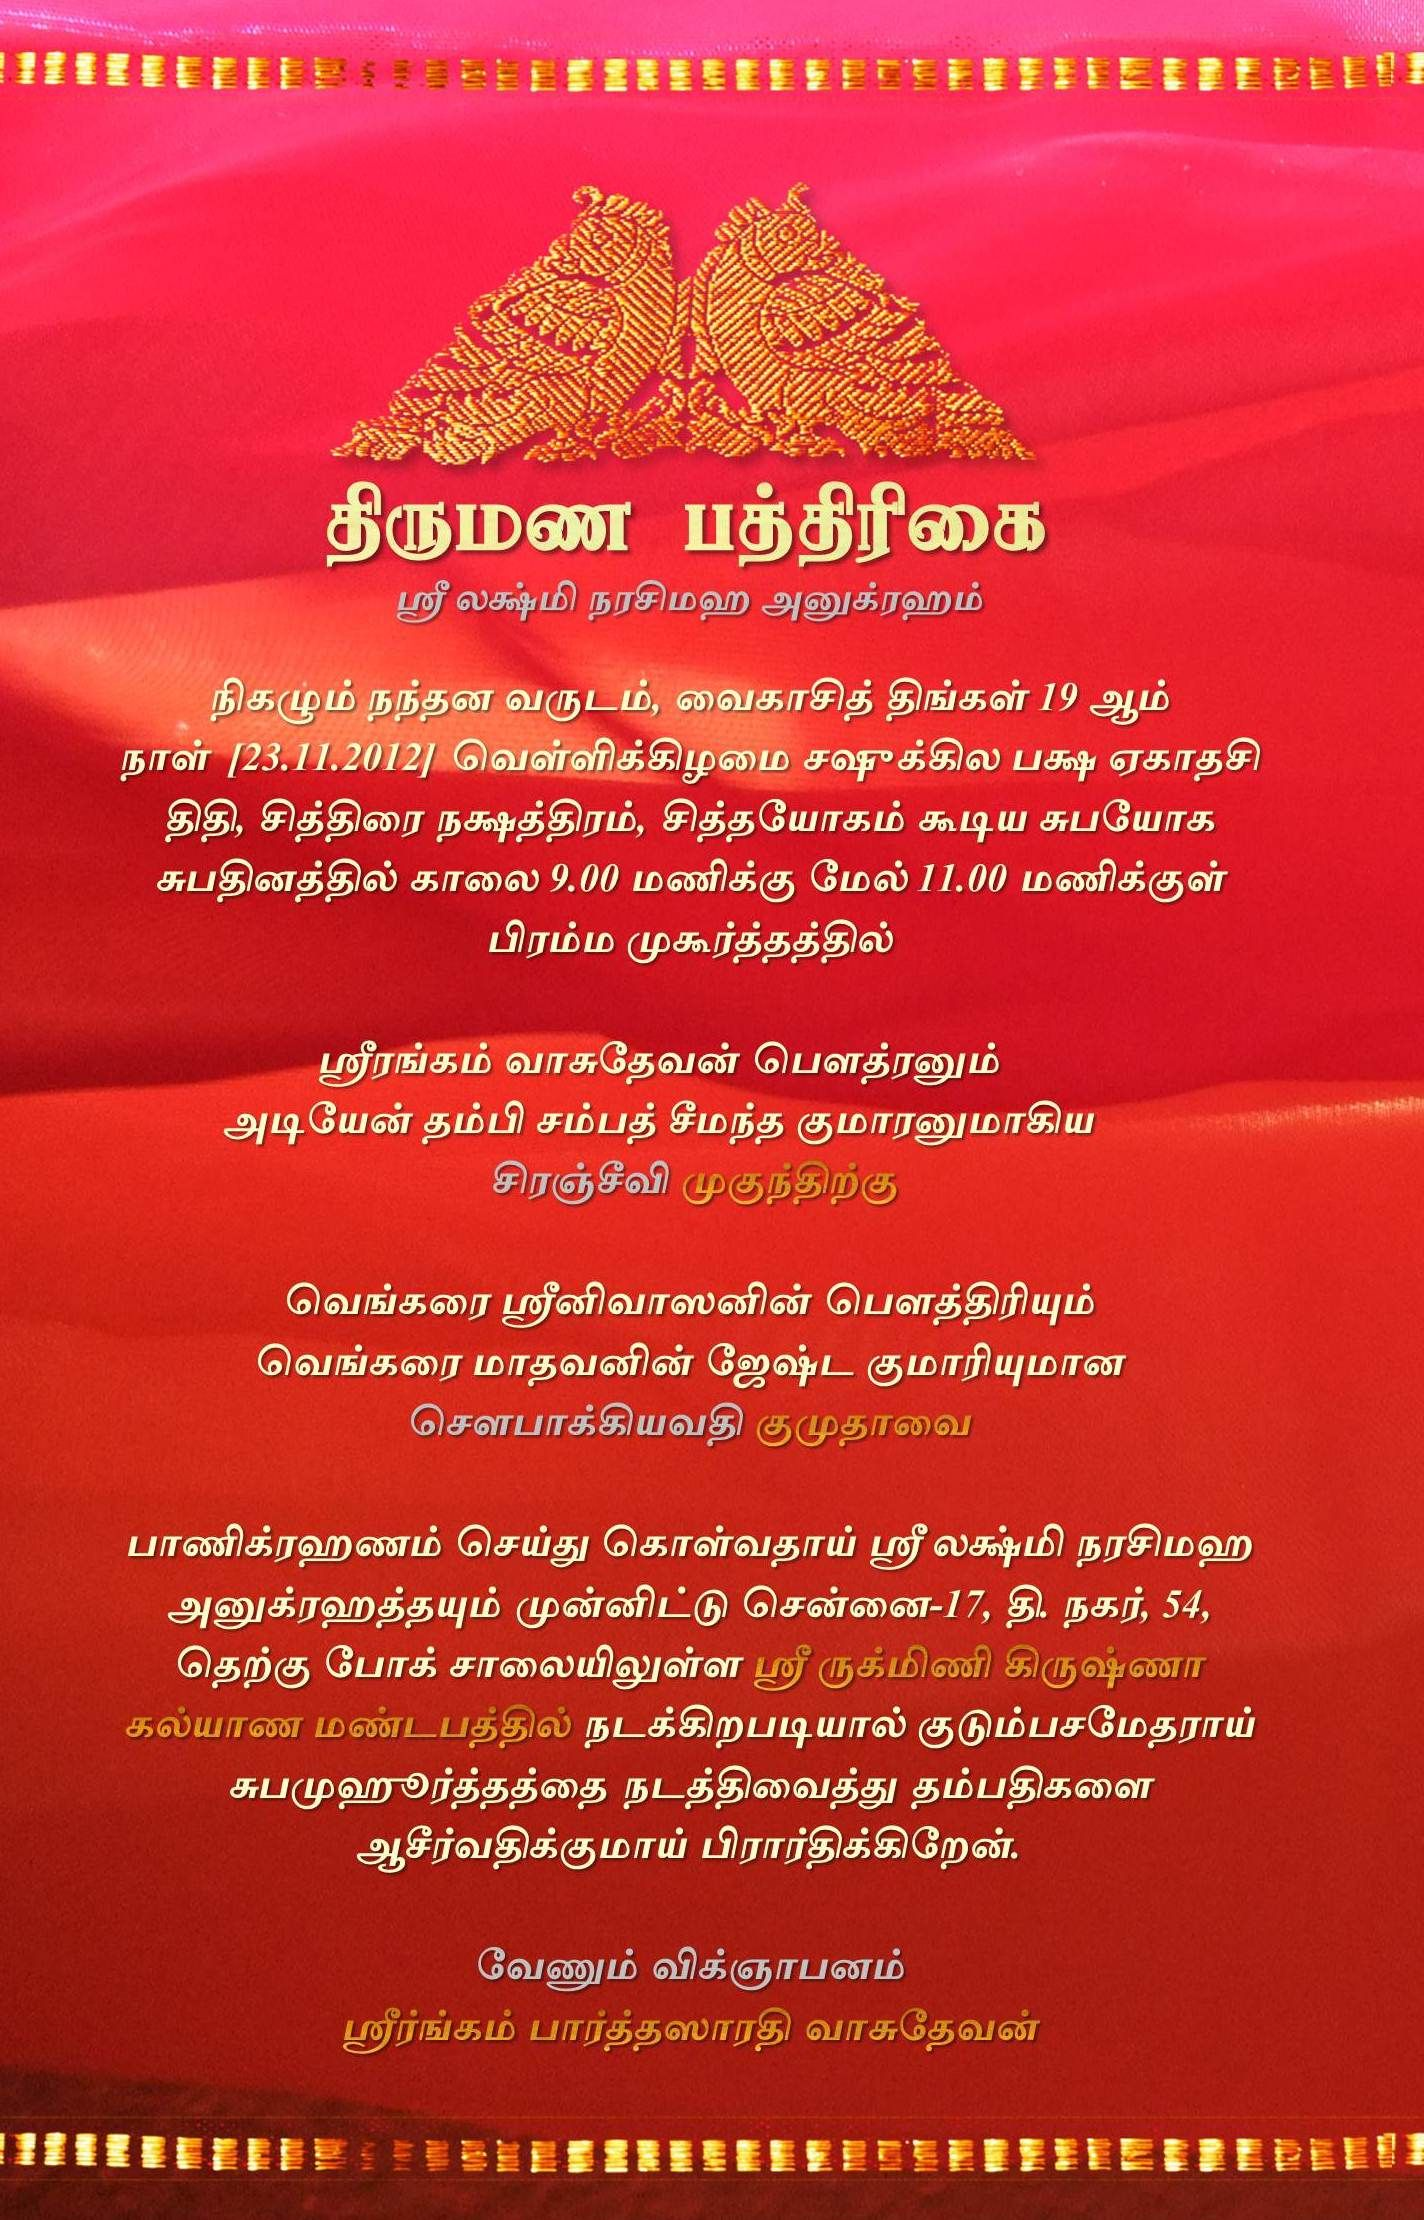 South Indian Wedding Invitation Wording Samples In Tamil   Invsite.co